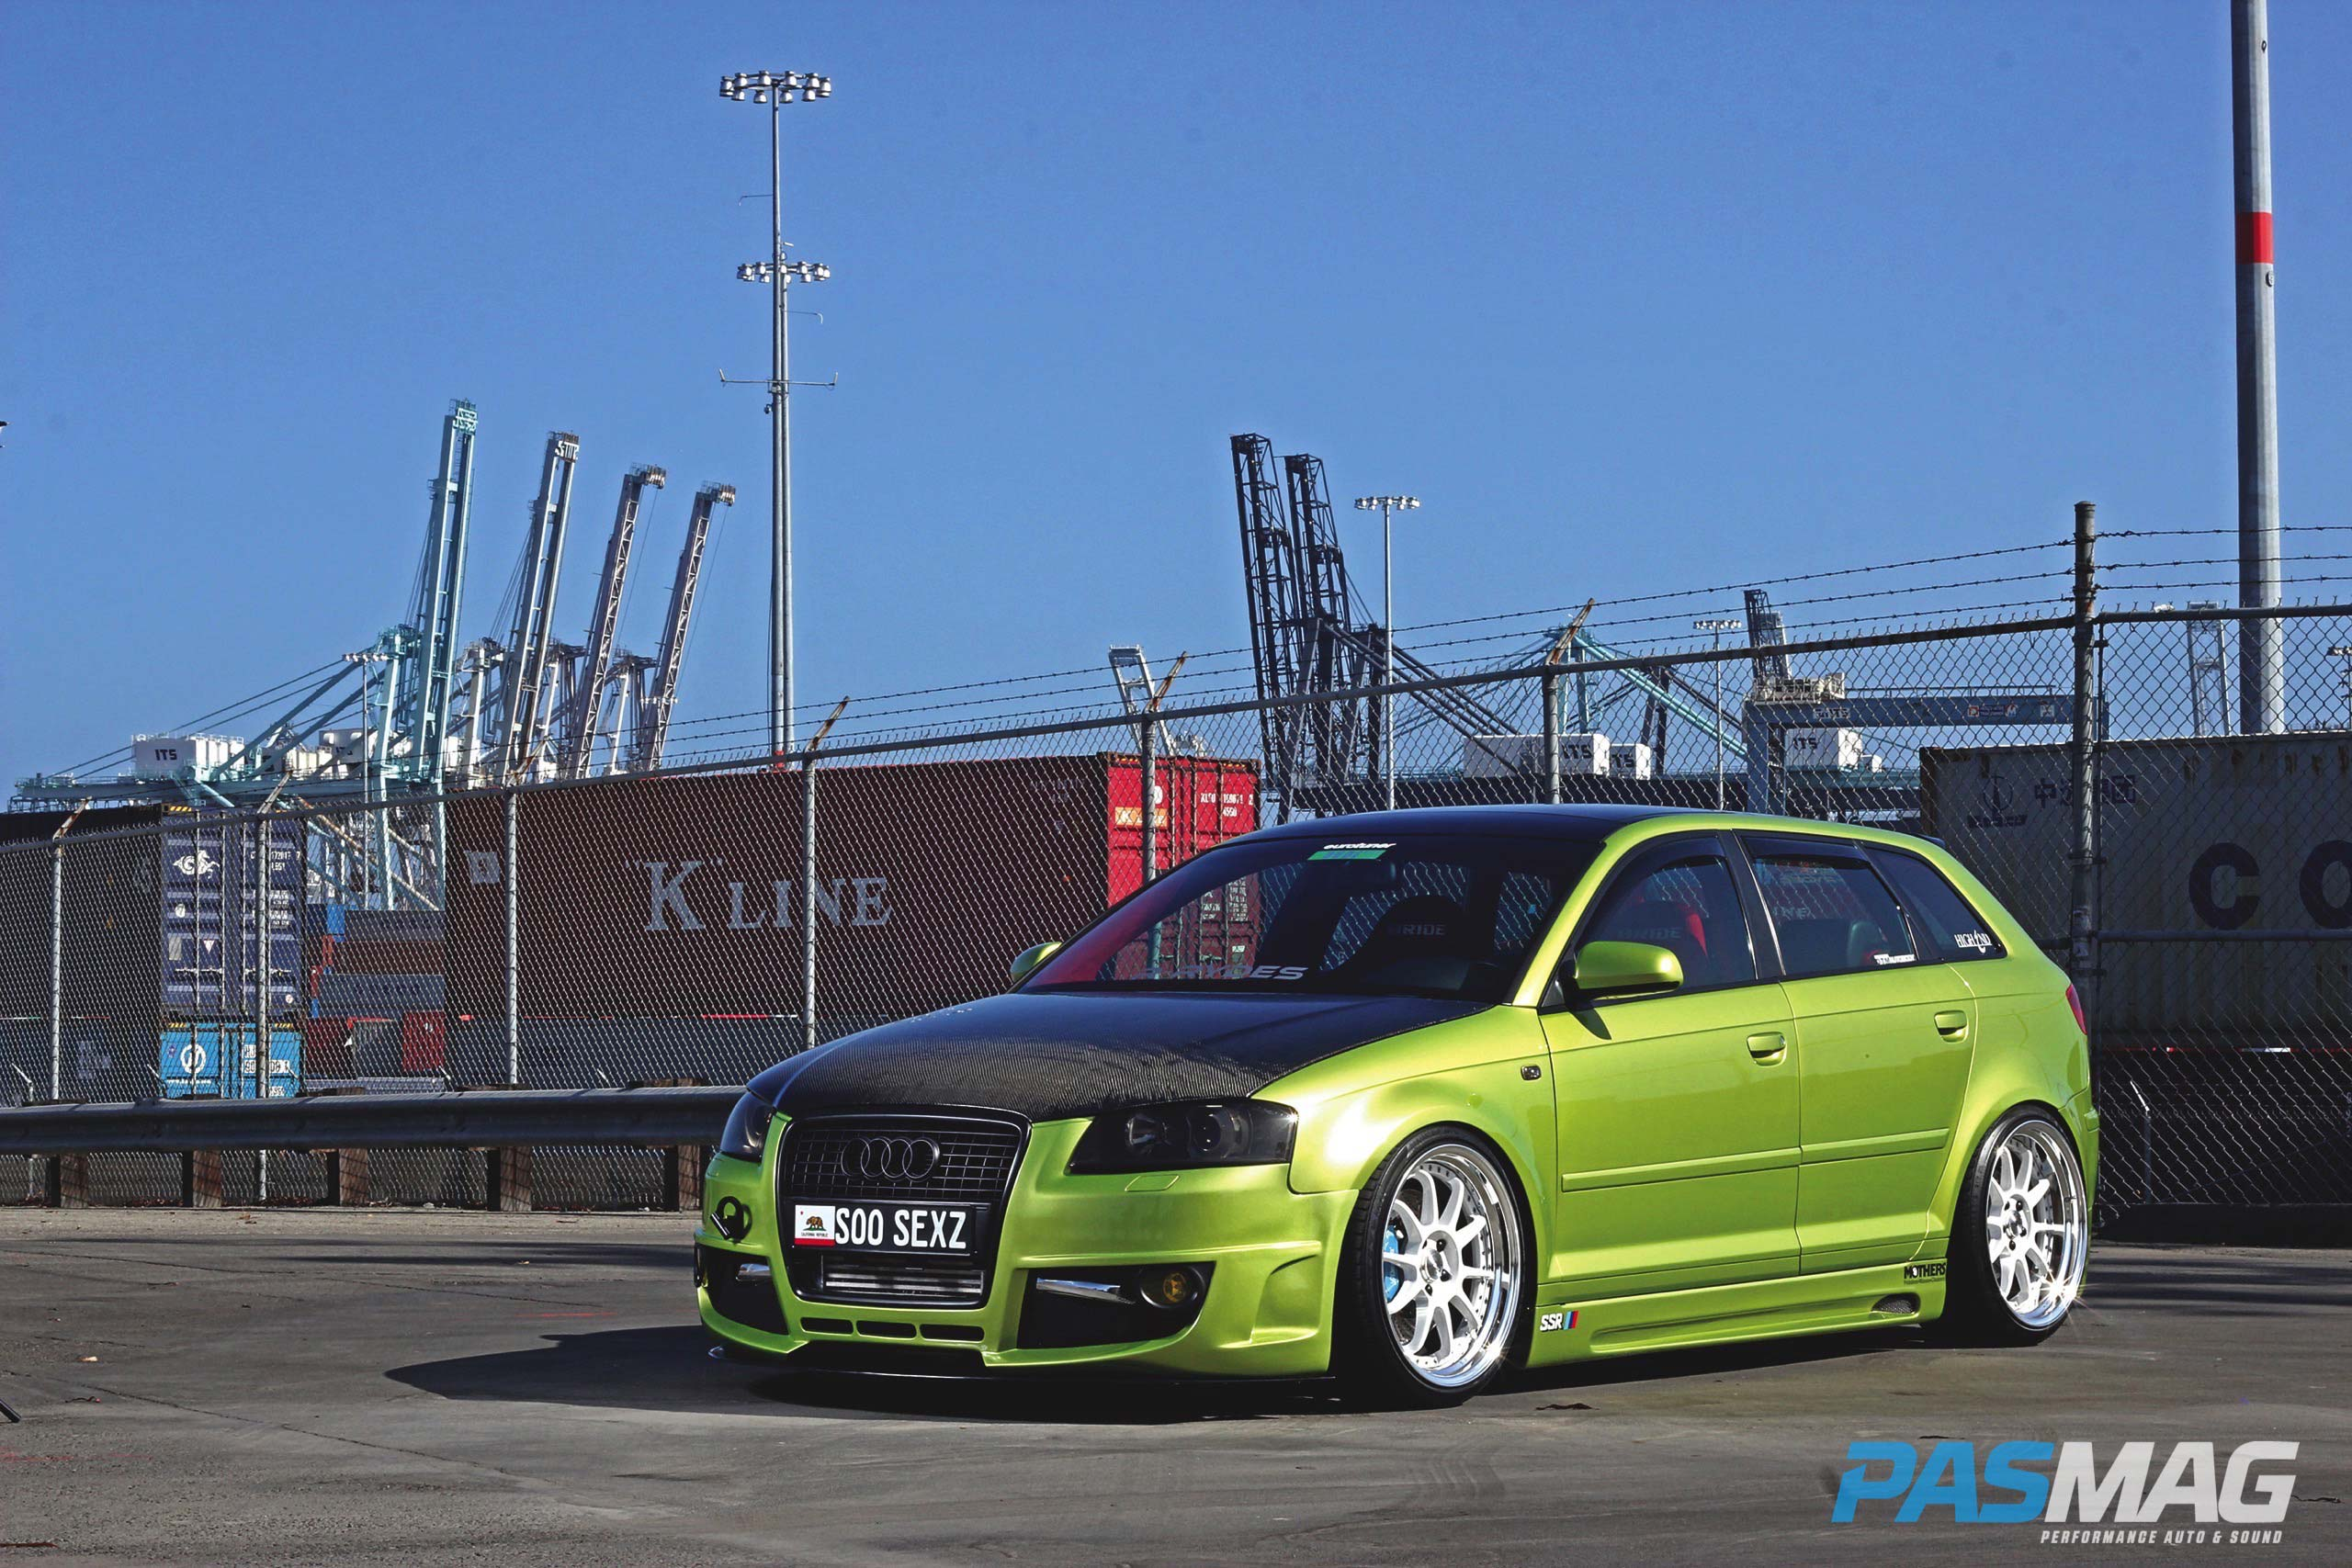 PASMAG: Trippin' Out- Joser Romo's Audi A3